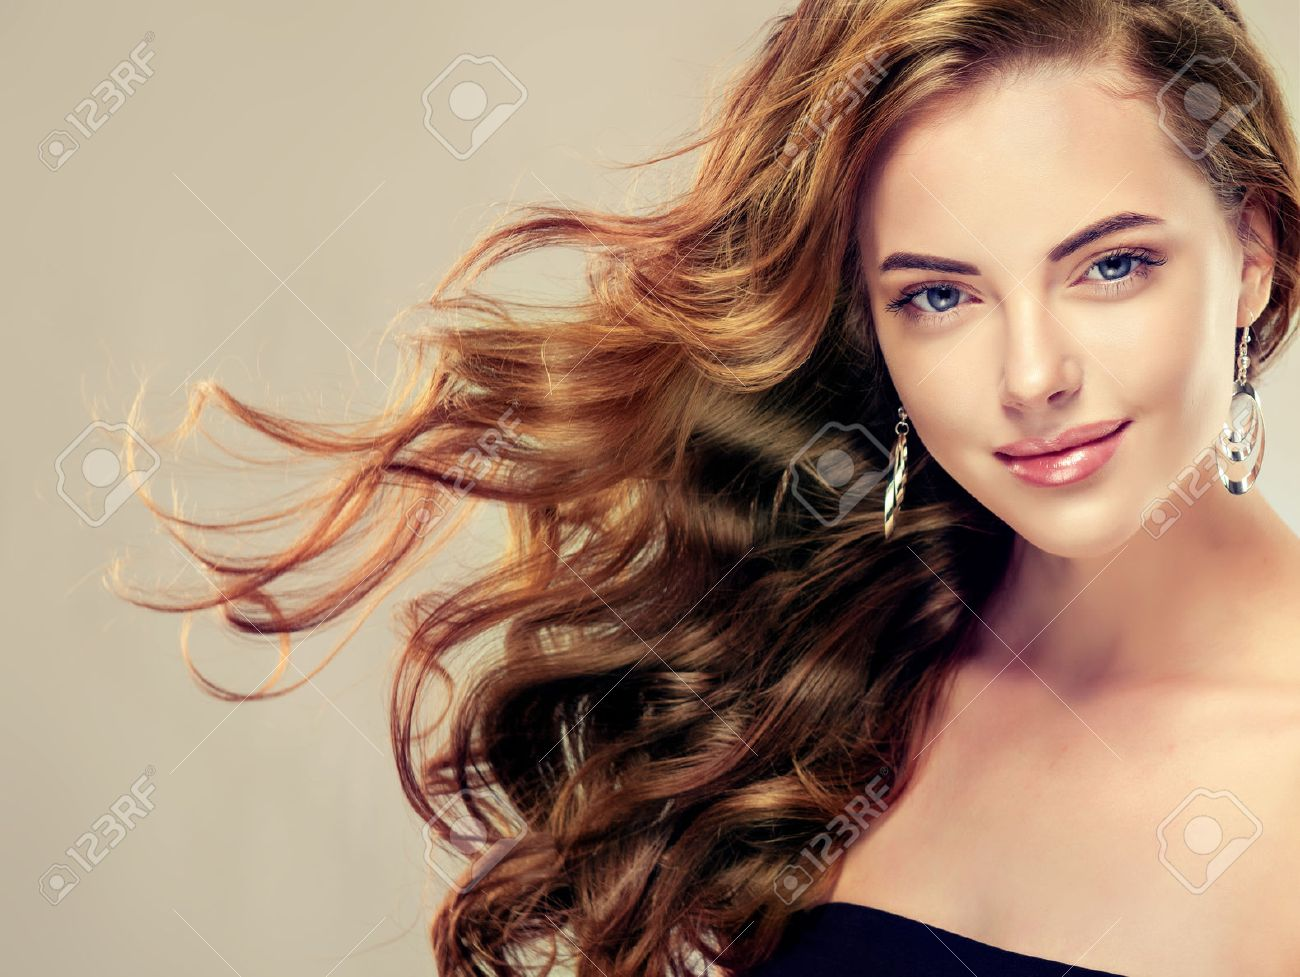 Beautiful girl with long wavy hair . Brunette model with curly hairstyle - 53032296